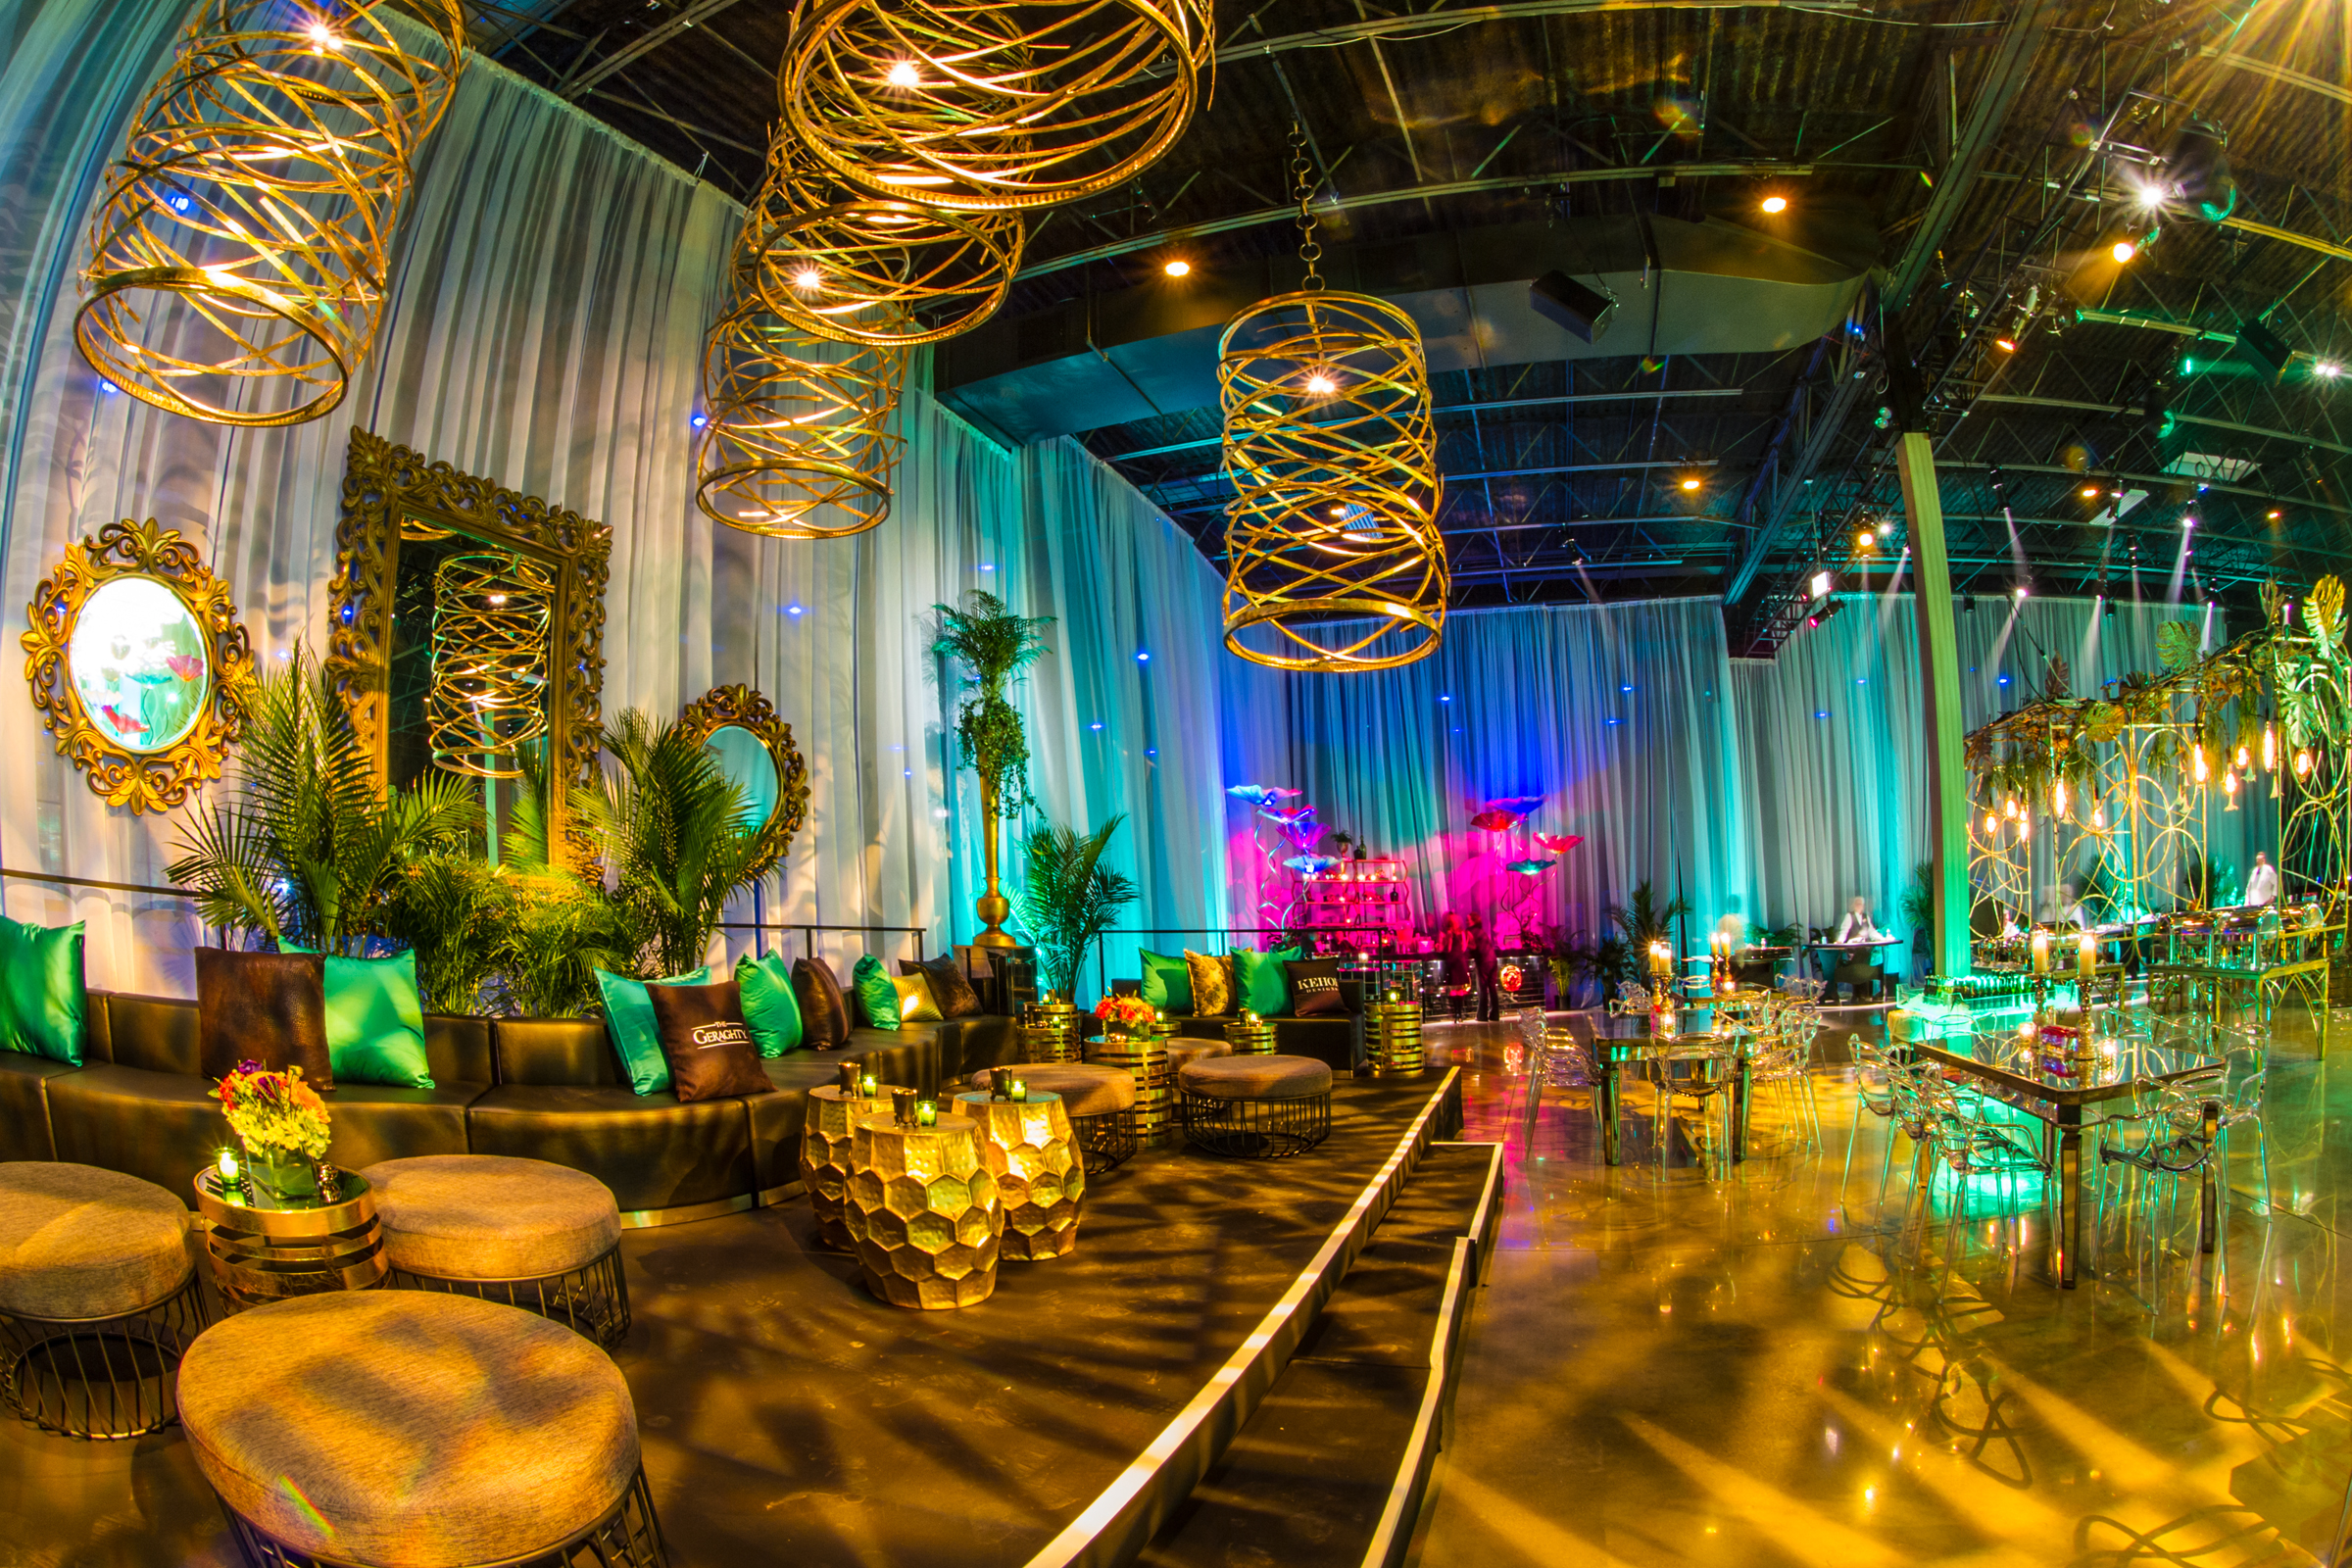 EMERALD CITY-INSPIRED HOLIDAY PARTY AT THE GERAGHTY - Kehoe Designs